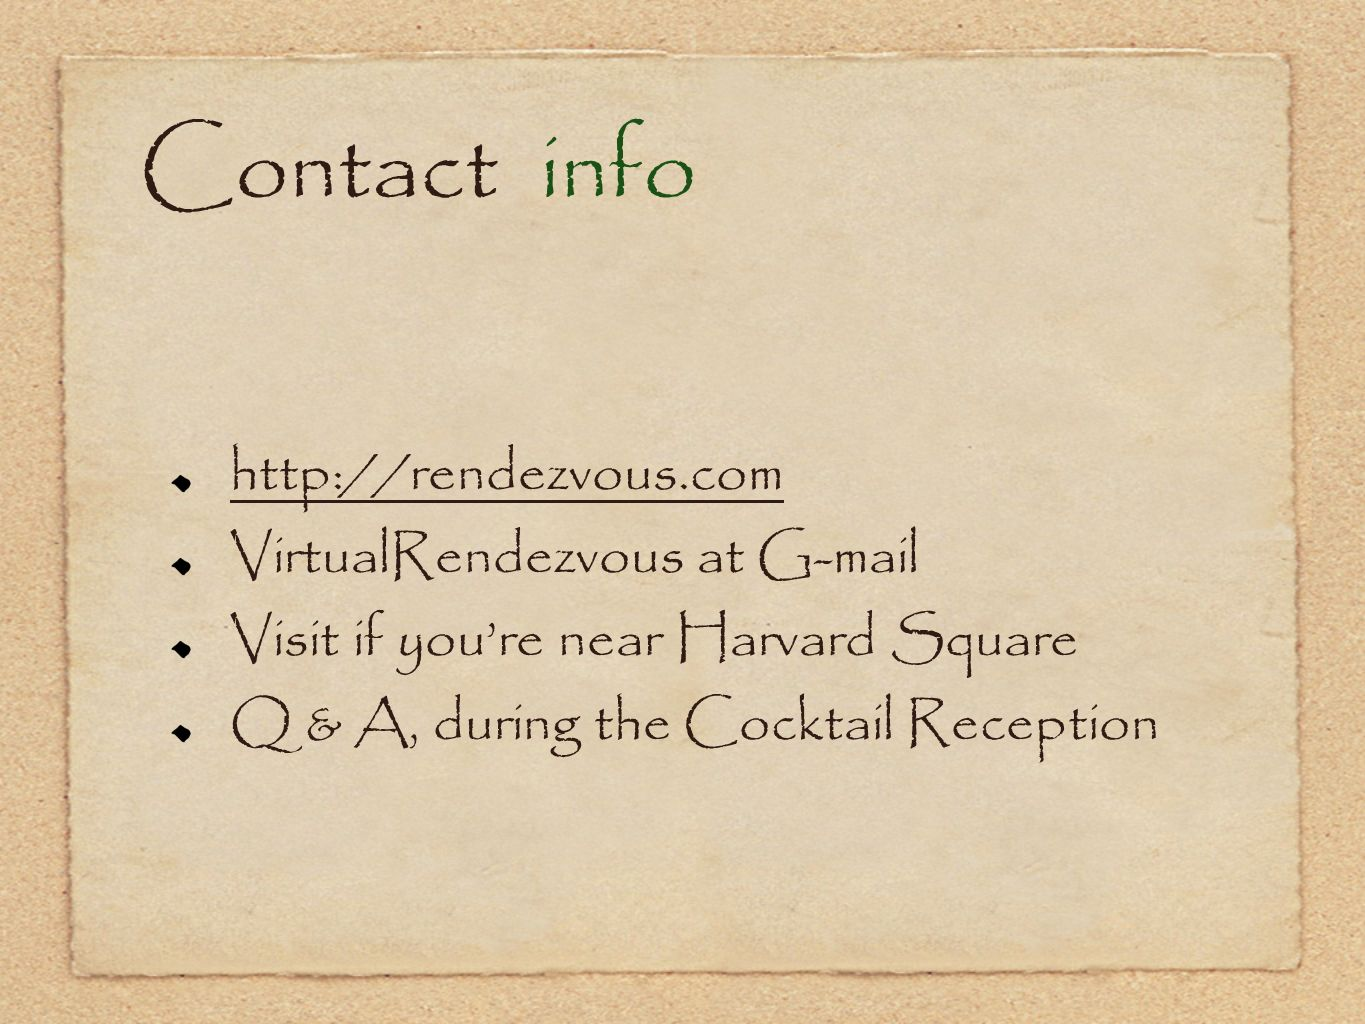 Contact info http://rendezvous.com. VirtualRendezvous at G-mail. Visit if you're near Harvard Square.